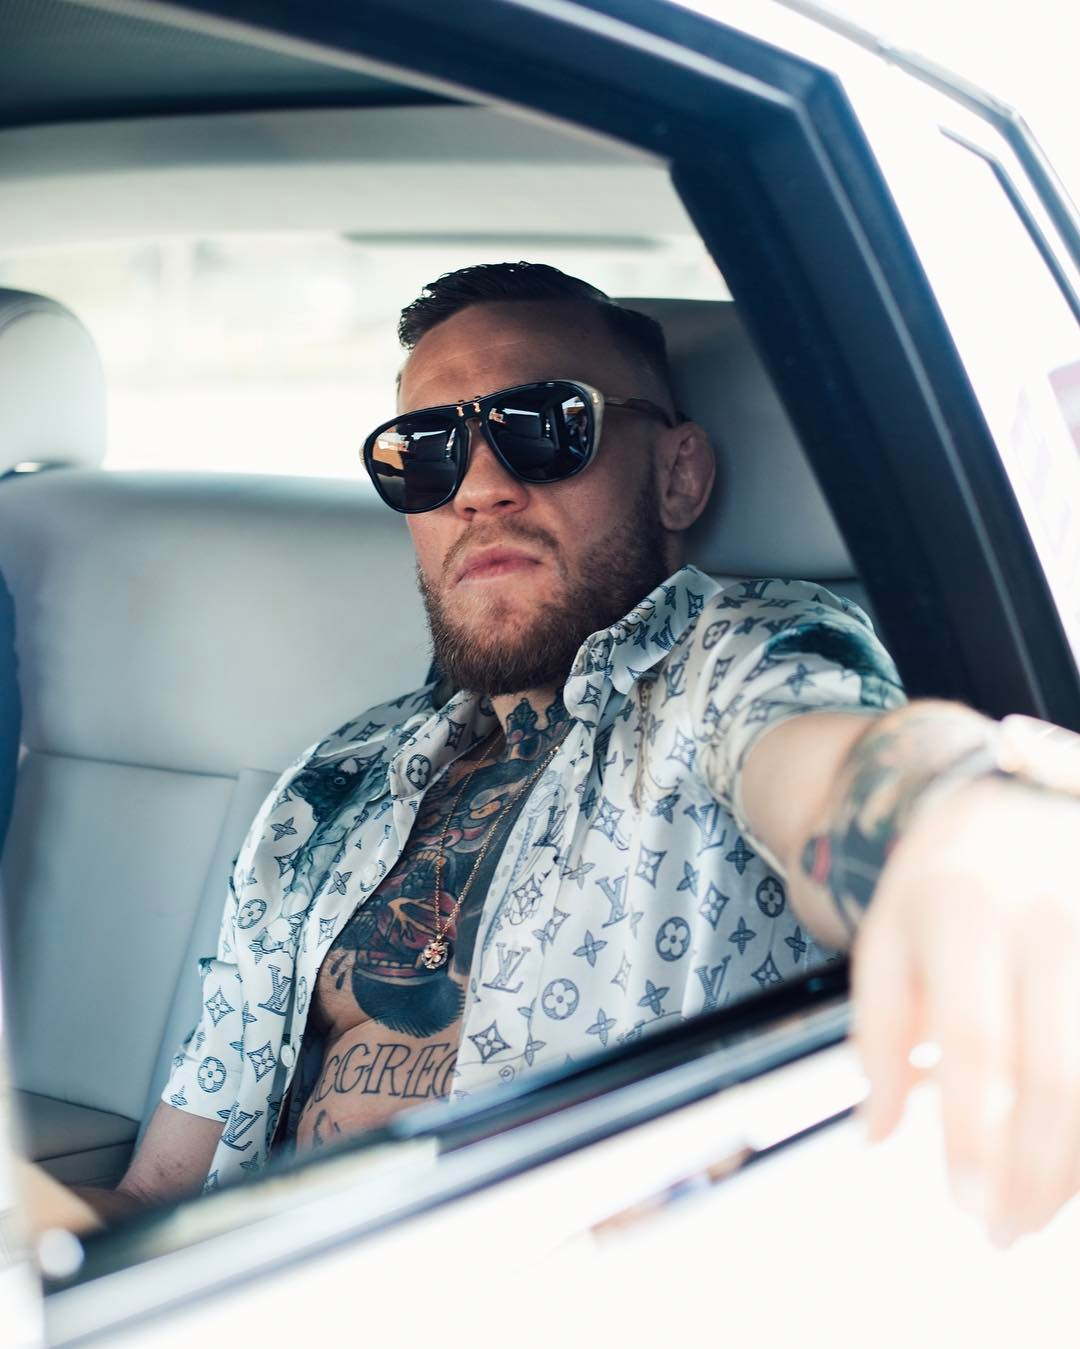 SPOTTED: Two Looks From Conor McGregor – Louis Vuitton Shirt And Saint Laurent Sneakers